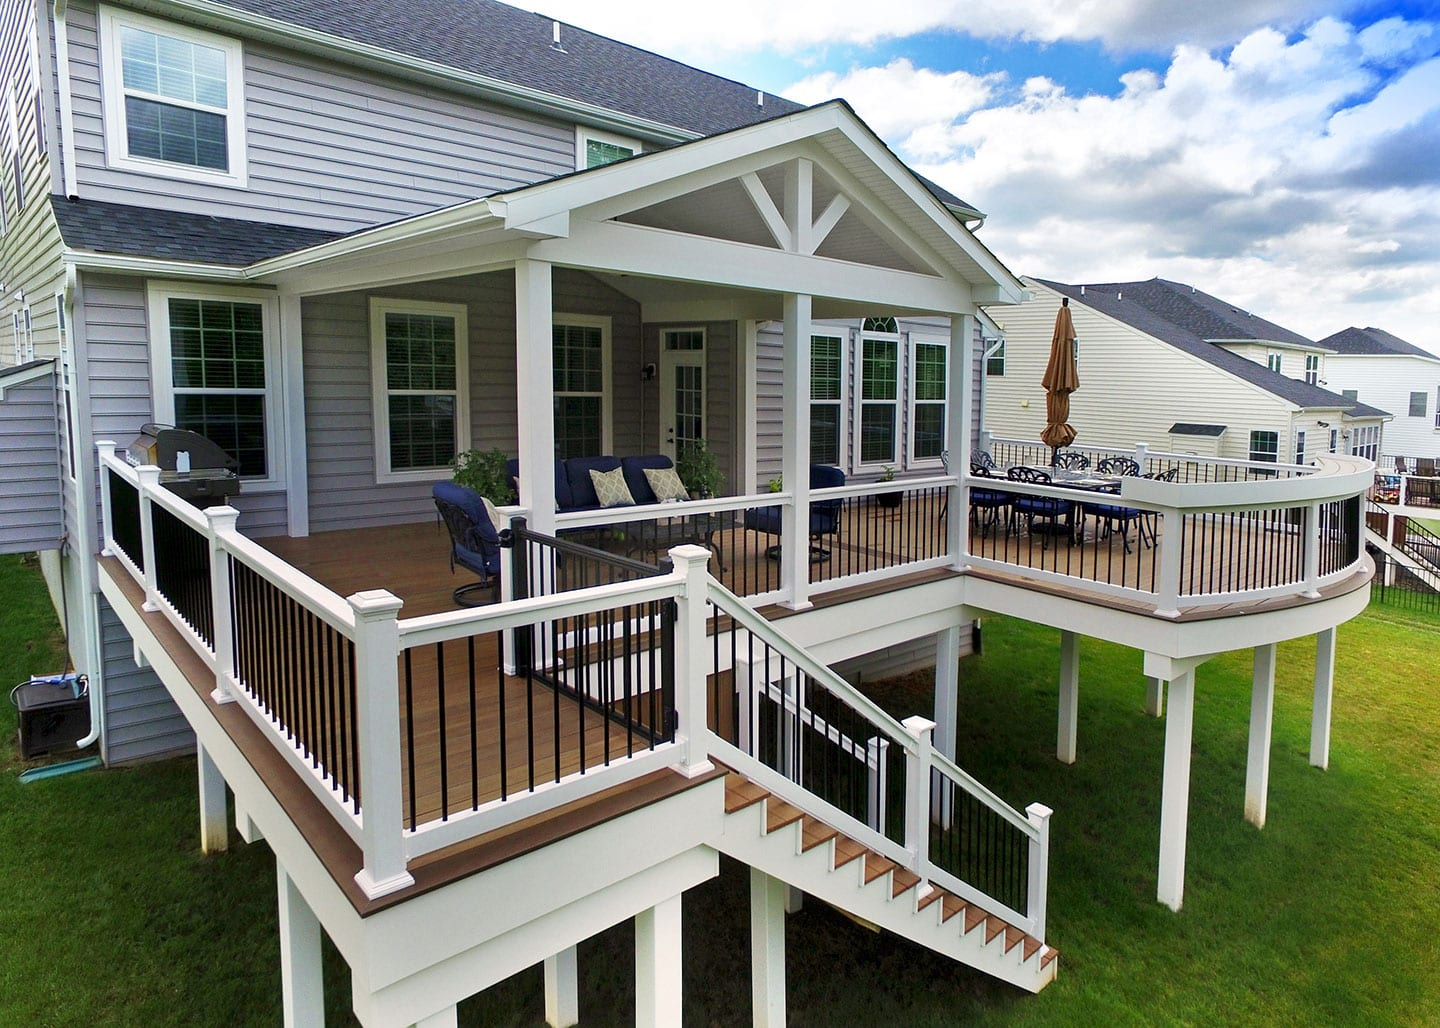 two story composite deck